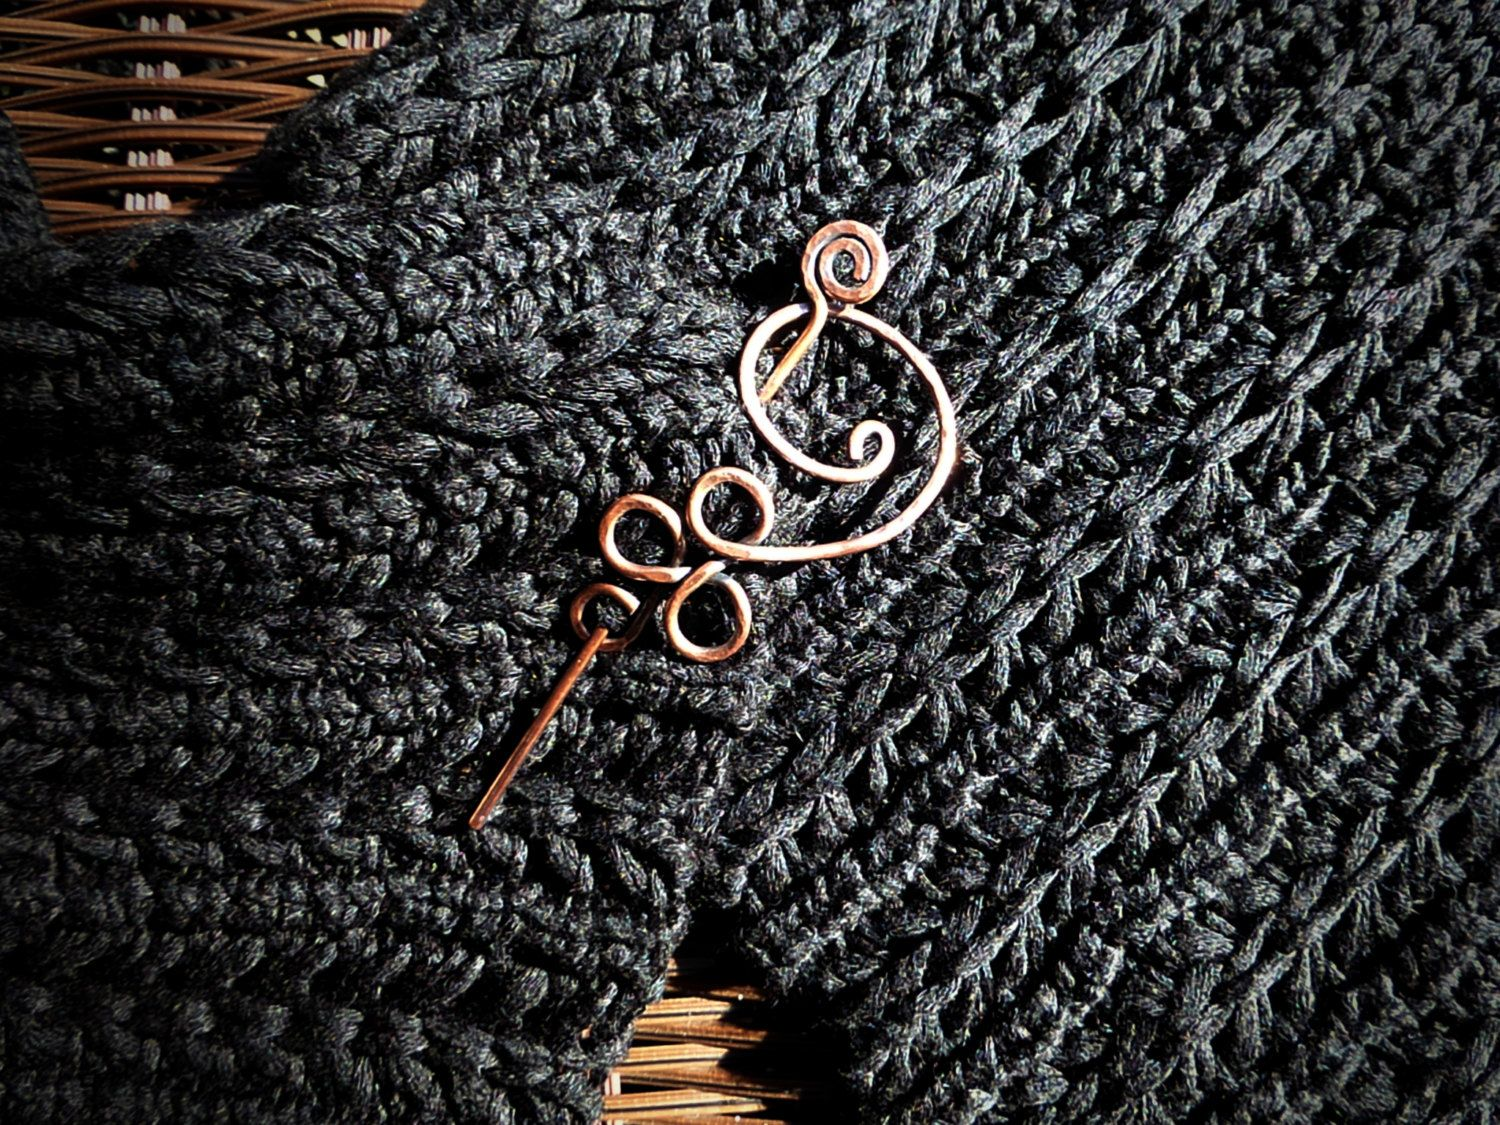 Handmade Forged Copper Flower Swirl Shawl Pin - 2 Piece - pinned ...